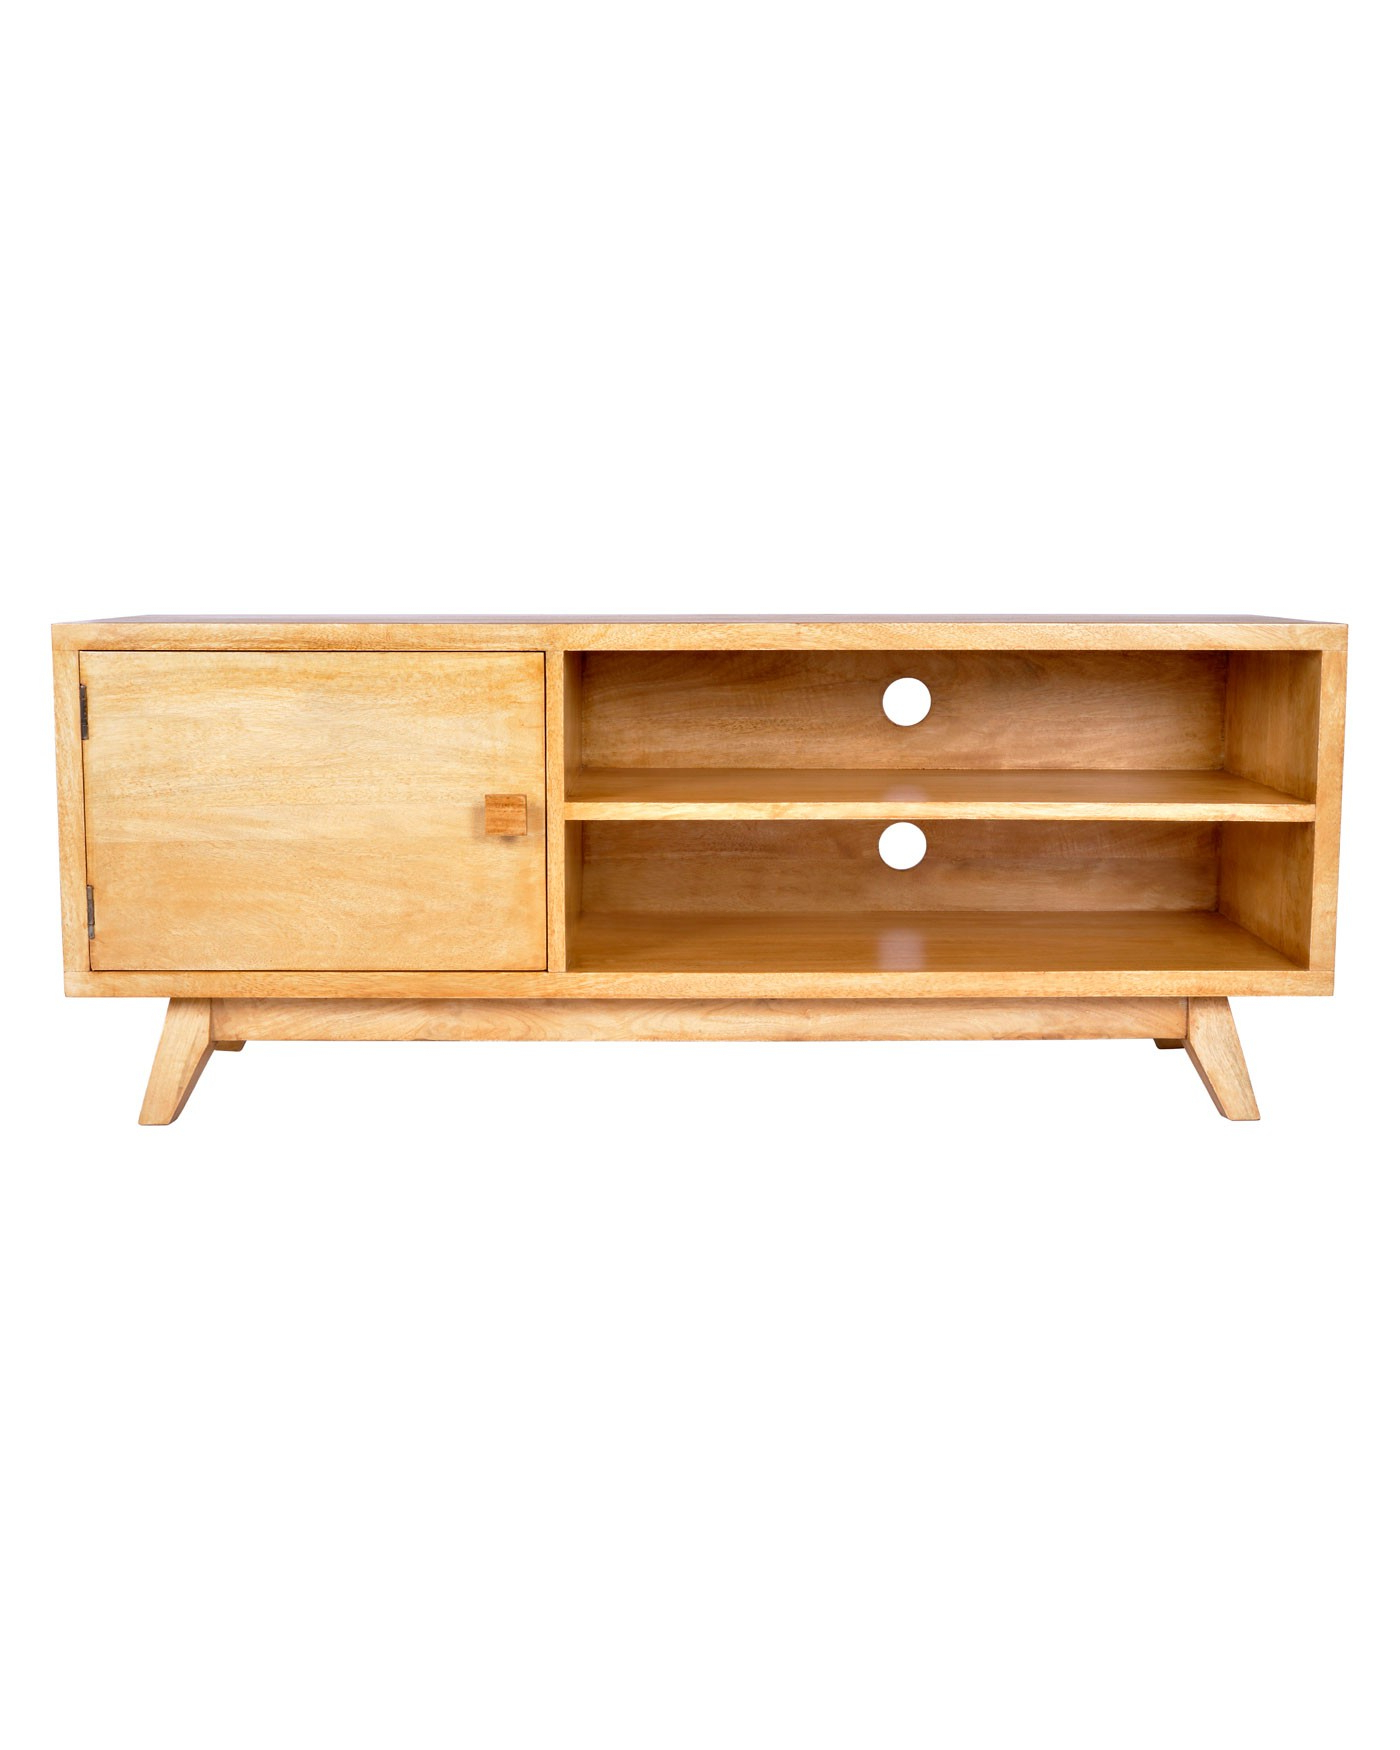 [%Retro Wooden Tv Stand With Shelf 100% Solid Mango Wood Oak Shade For Newest Mango Tv Stands|Mango Tv Stands In Fashionable Retro Wooden Tv Stand With Shelf 100% Solid Mango Wood Oak Shade|Fashionable Mango Tv Stands For Retro Wooden Tv Stand With Shelf 100% Solid Mango Wood Oak Shade|Widely Used Retro Wooden Tv Stand With Shelf 100% Solid Mango Wood Oak Shade Inside Mango Tv Stands%] (View 2 of 20)